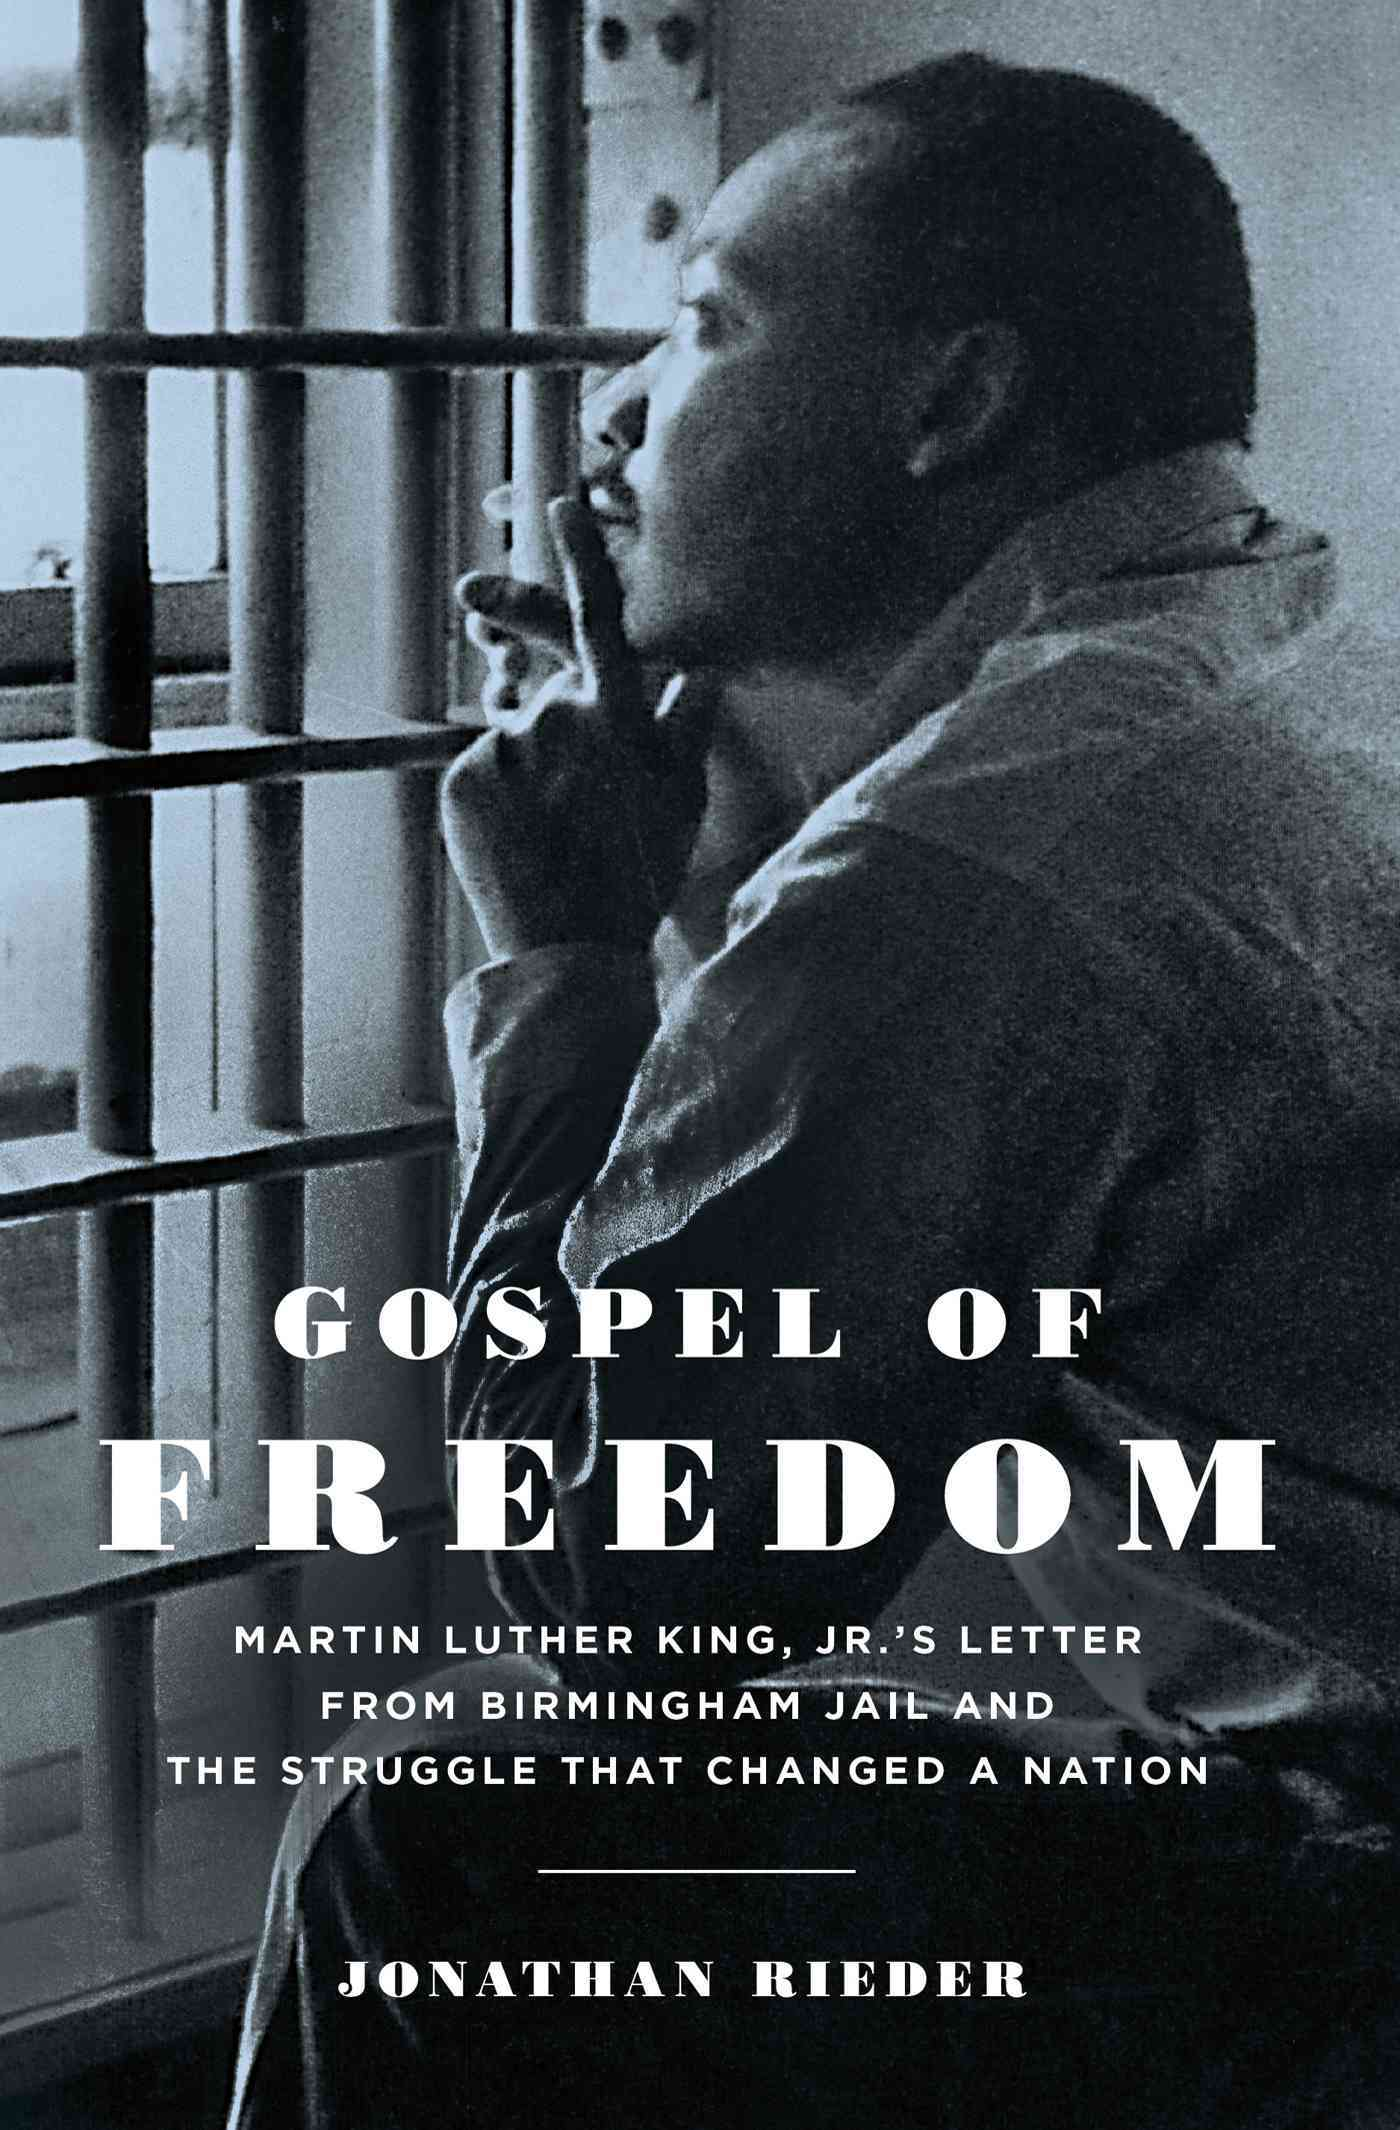 Gospel of Freedom: Martin Luther King, Jr.'s Letter from Birmingham Jail and the Struggle That Changed a Nation (Hardcover)